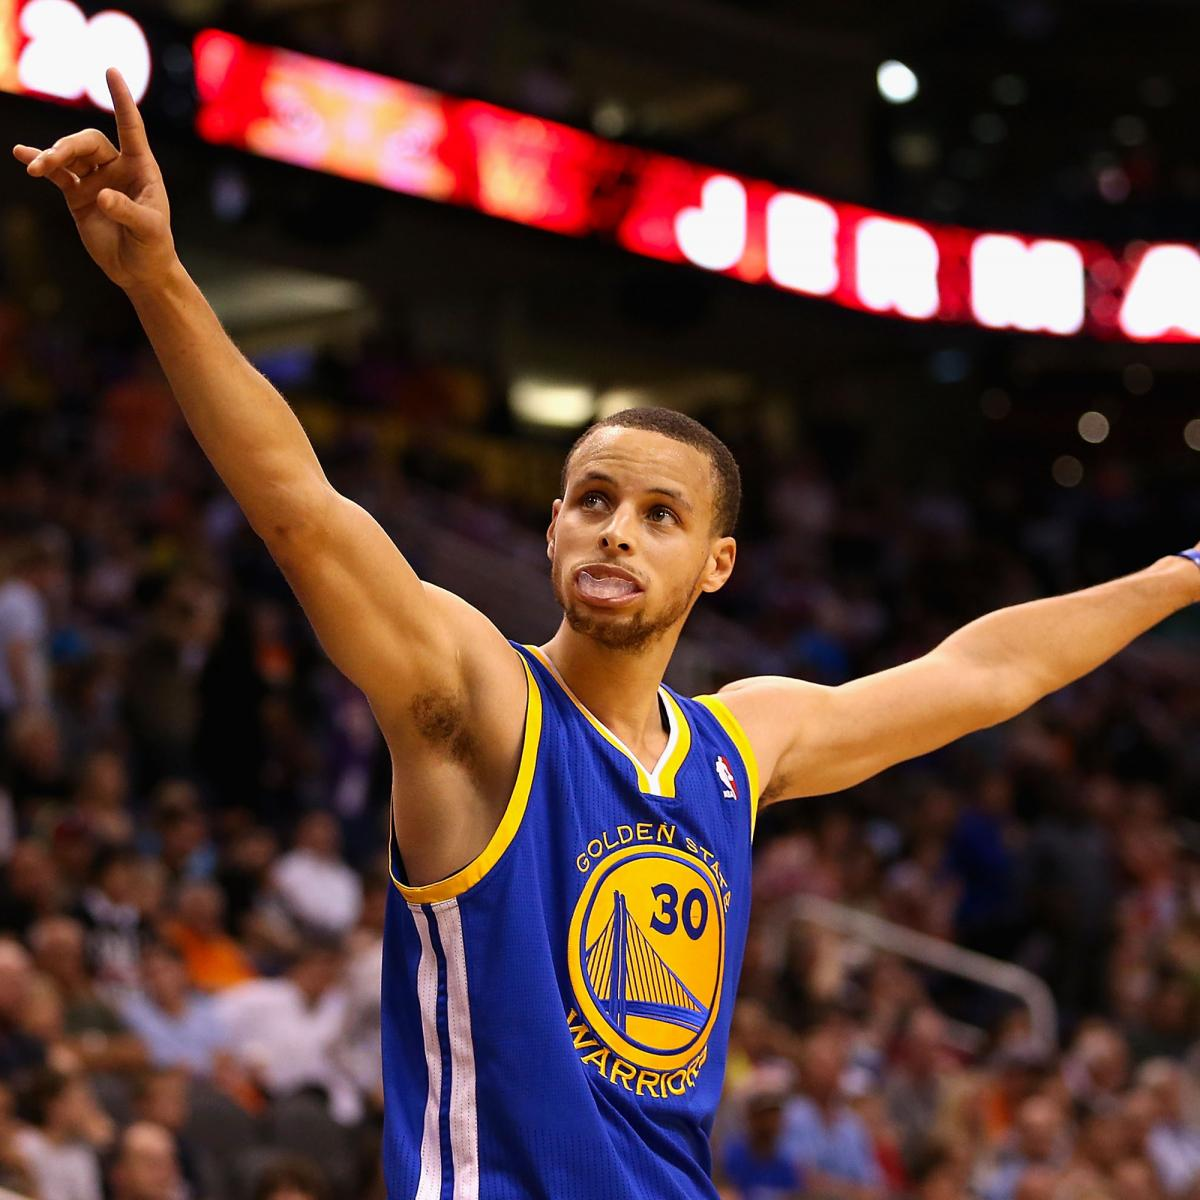 Warriors Vs Nets Full Game Highlights: The World Changes A Lot Between Golden State Warriors